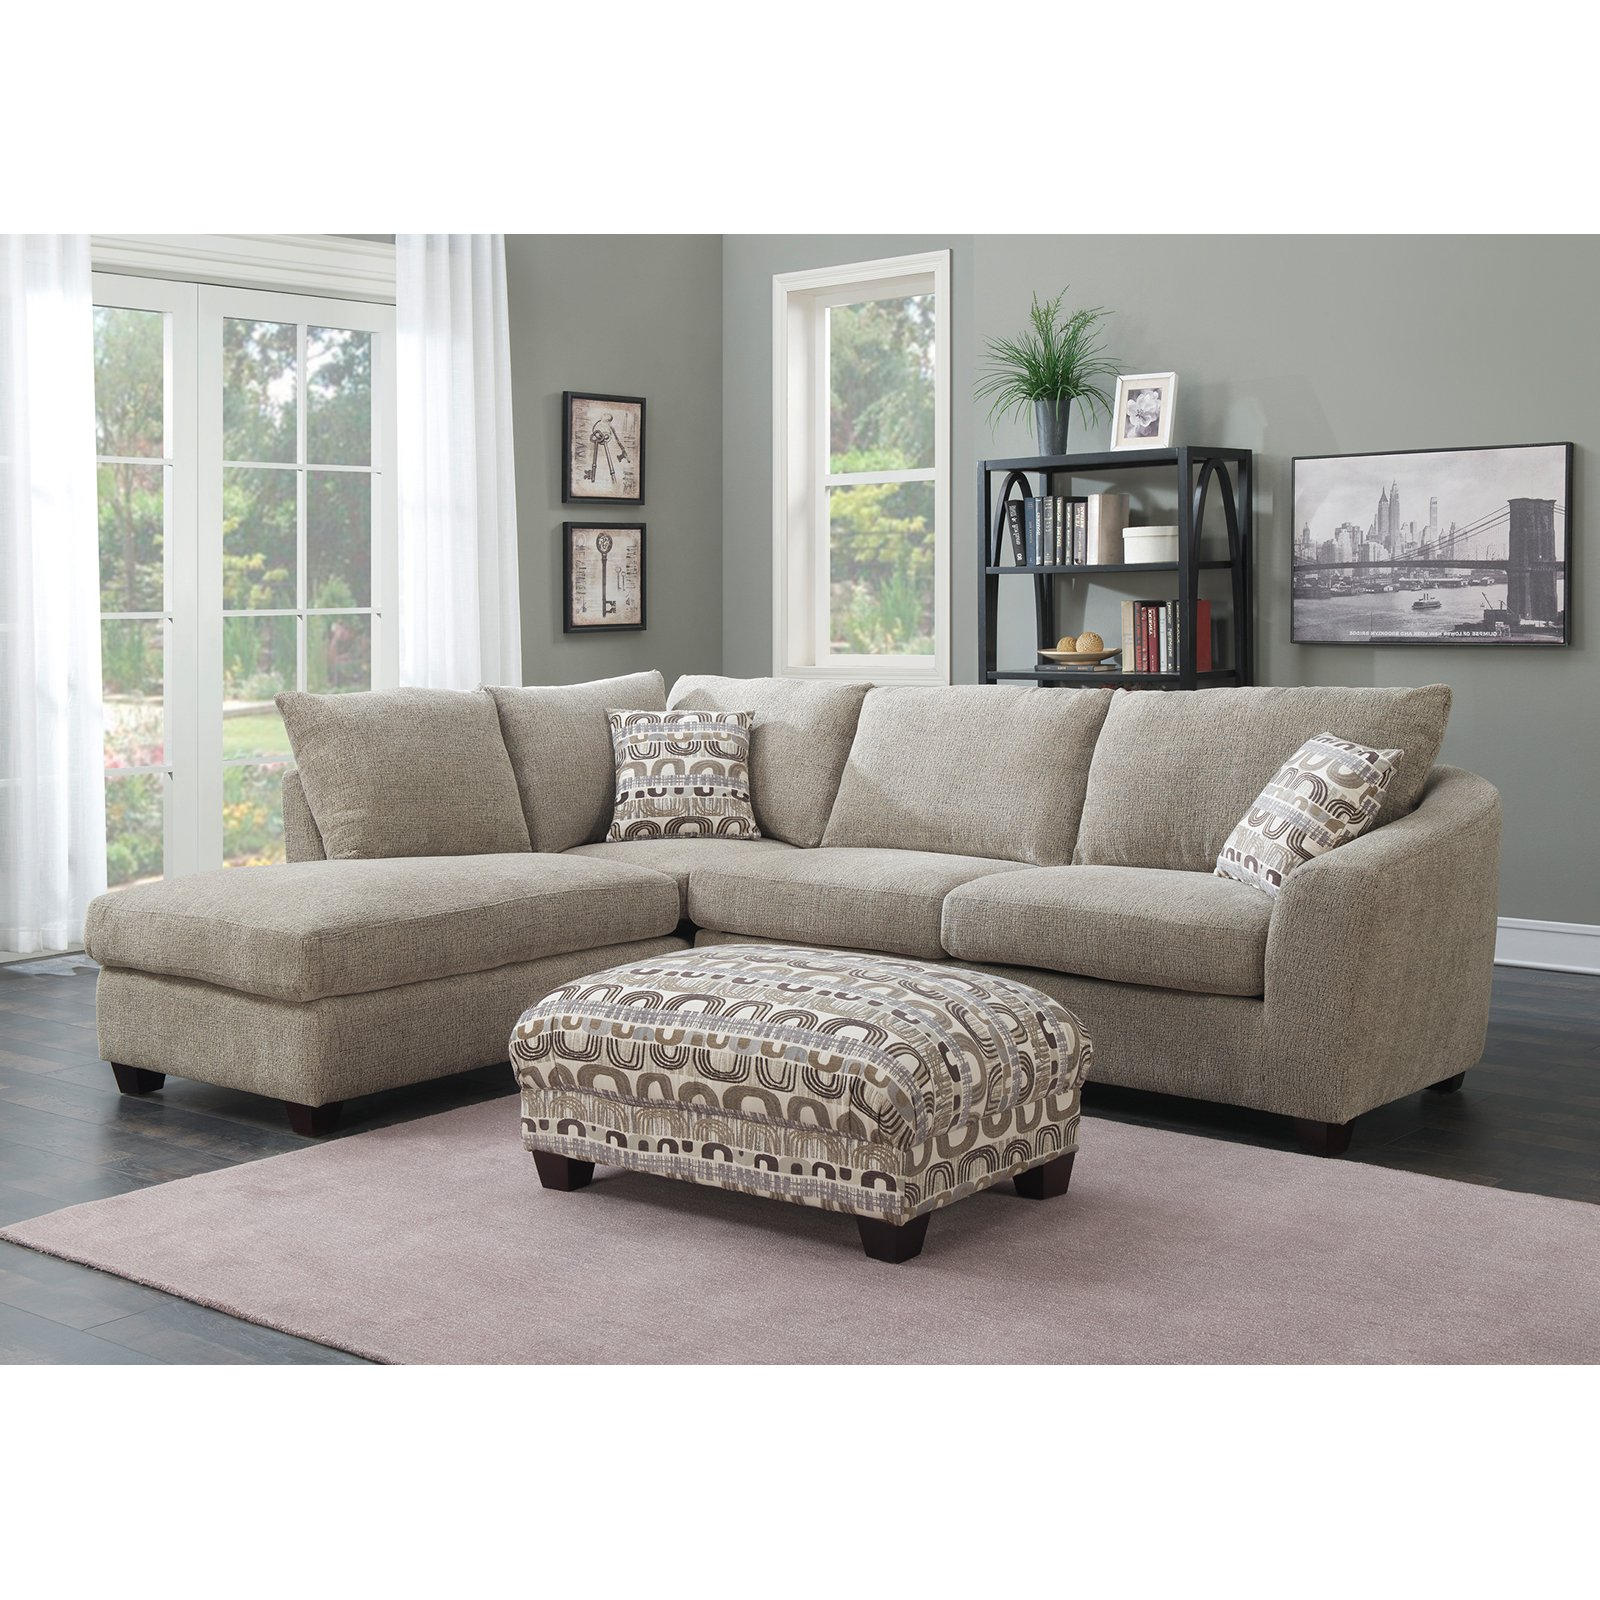 2 Piece Sectional With Chaise – Tidex With Current Avery 2 Piece Sectionals With Laf Armless Chaise (Gallery 4 of 20)